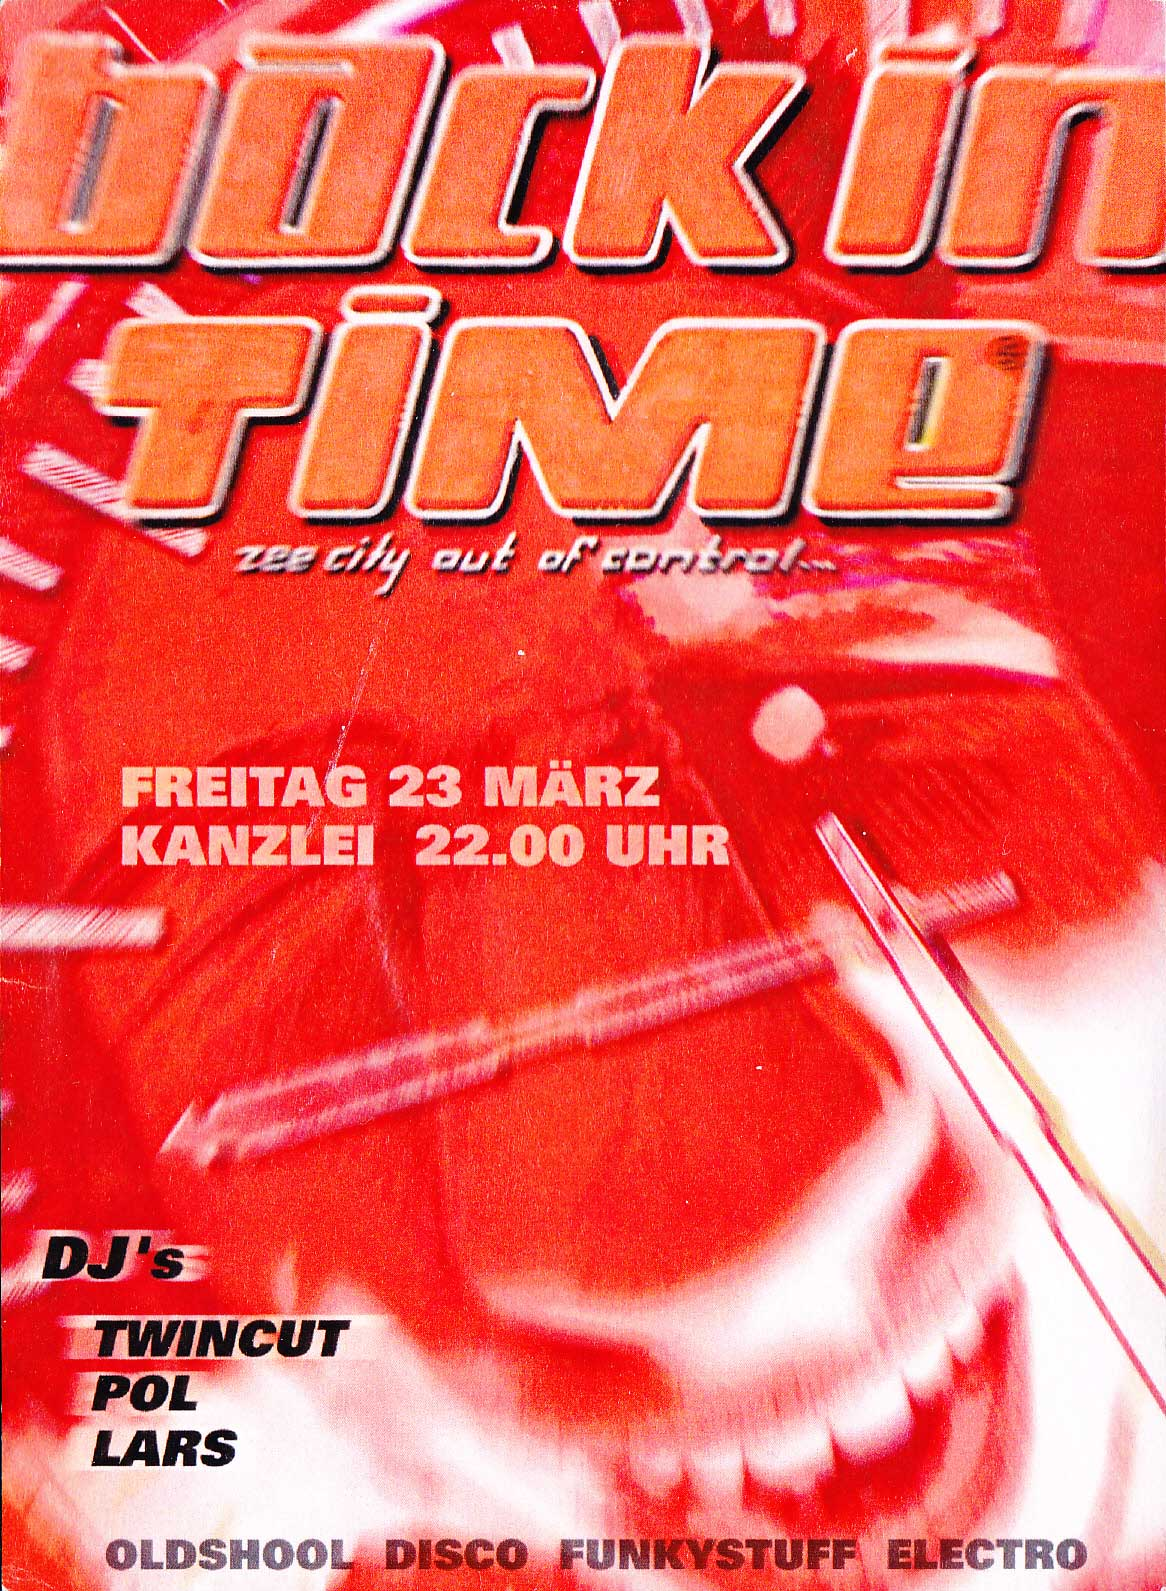 back in time 2000